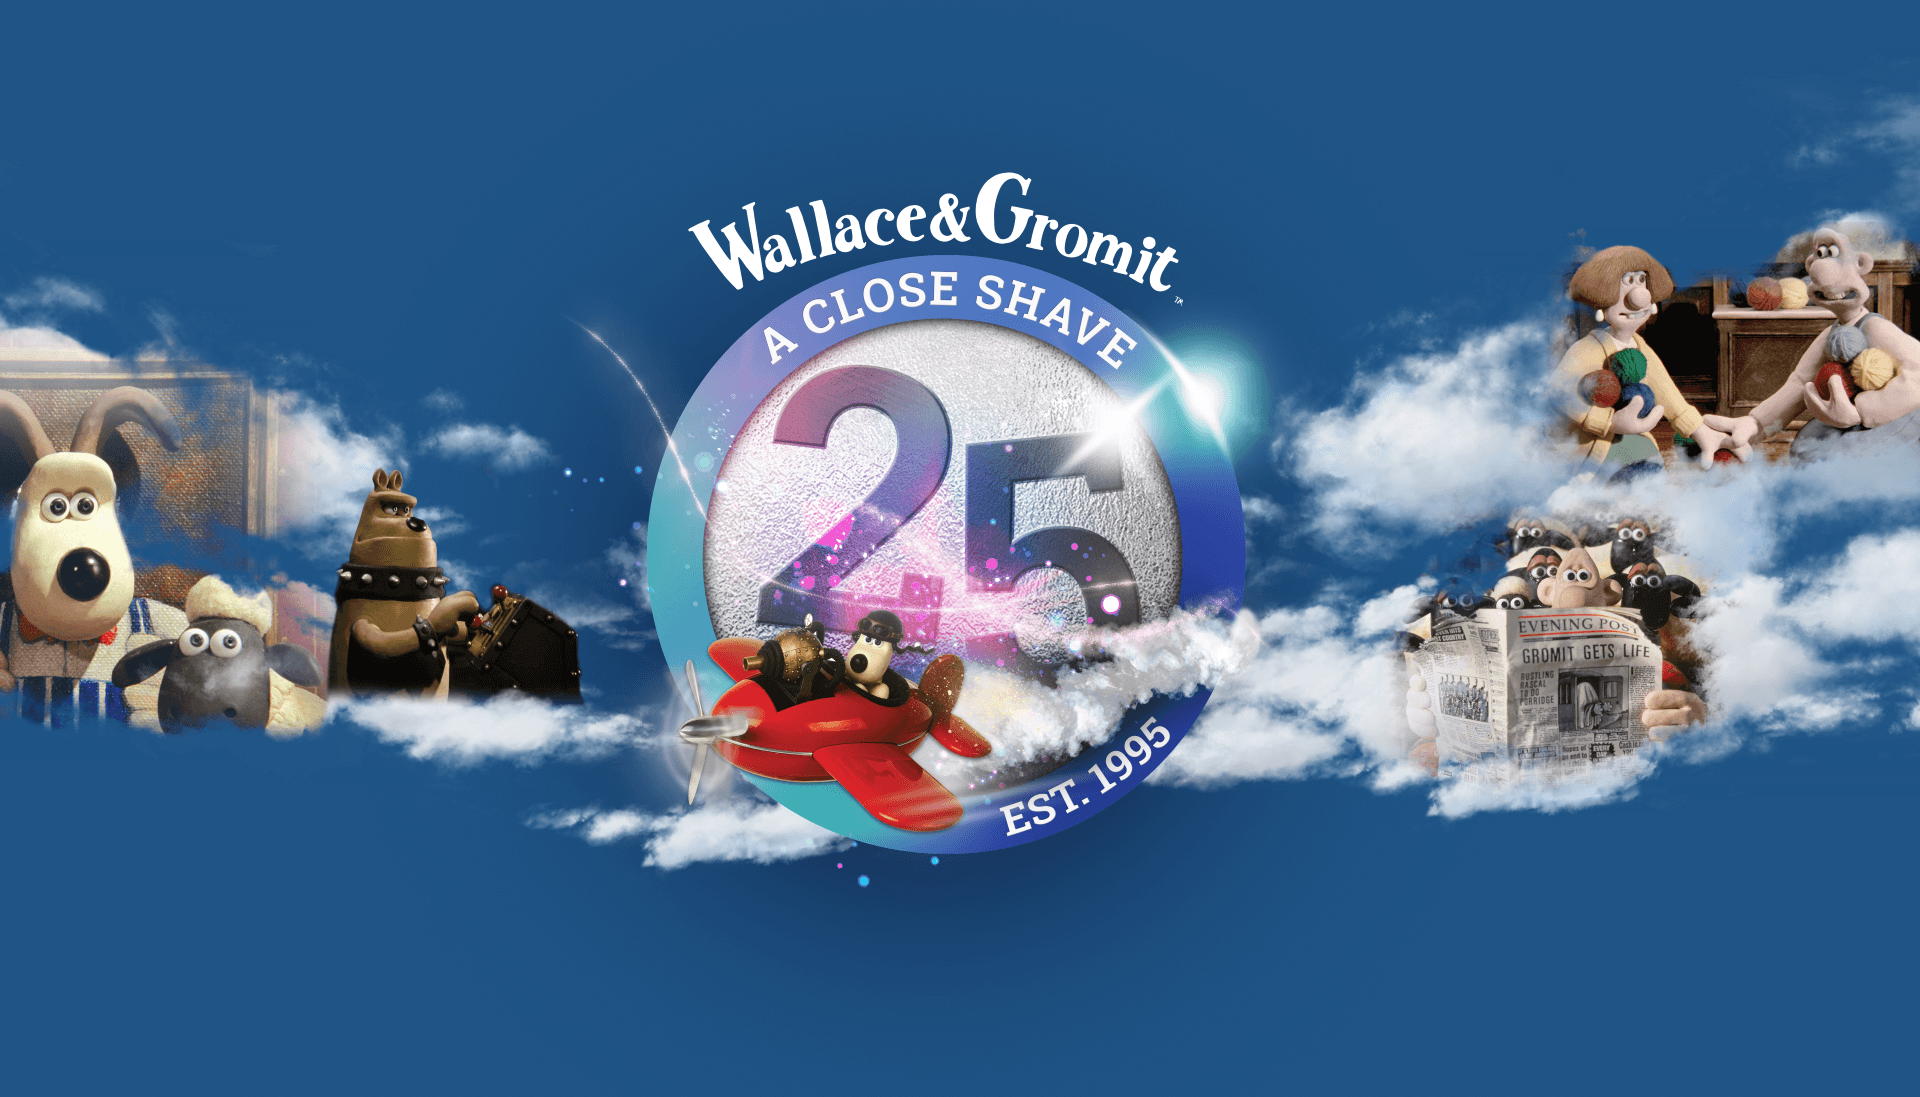 Wallace & Gromit: A Close Shave 25th anniversary